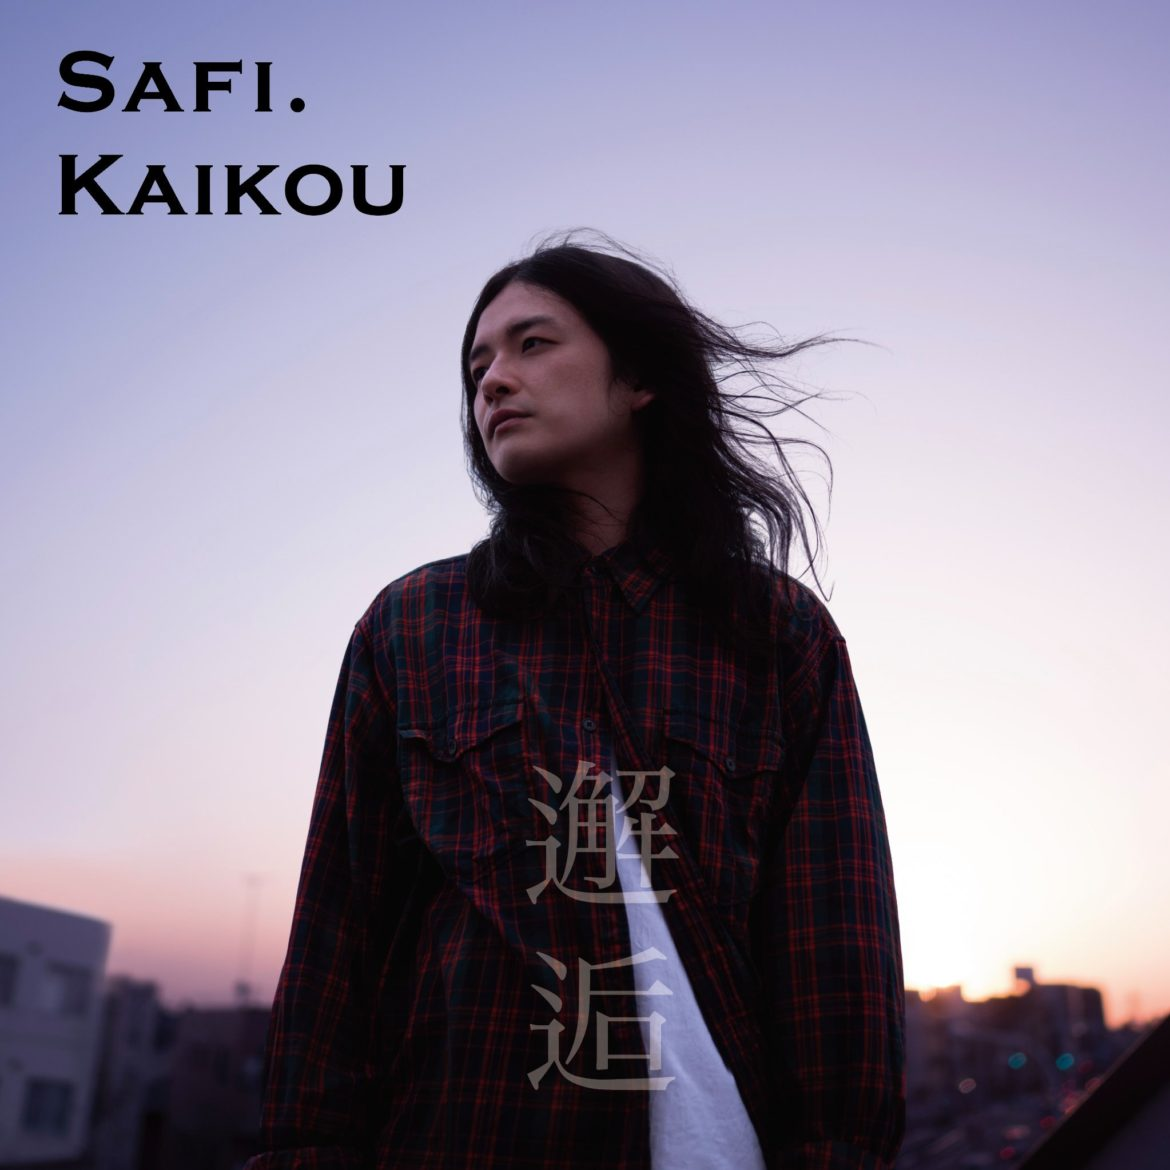 'Kaikou' by Safi with Cutsigh & Lonsesome Corporation [CD]